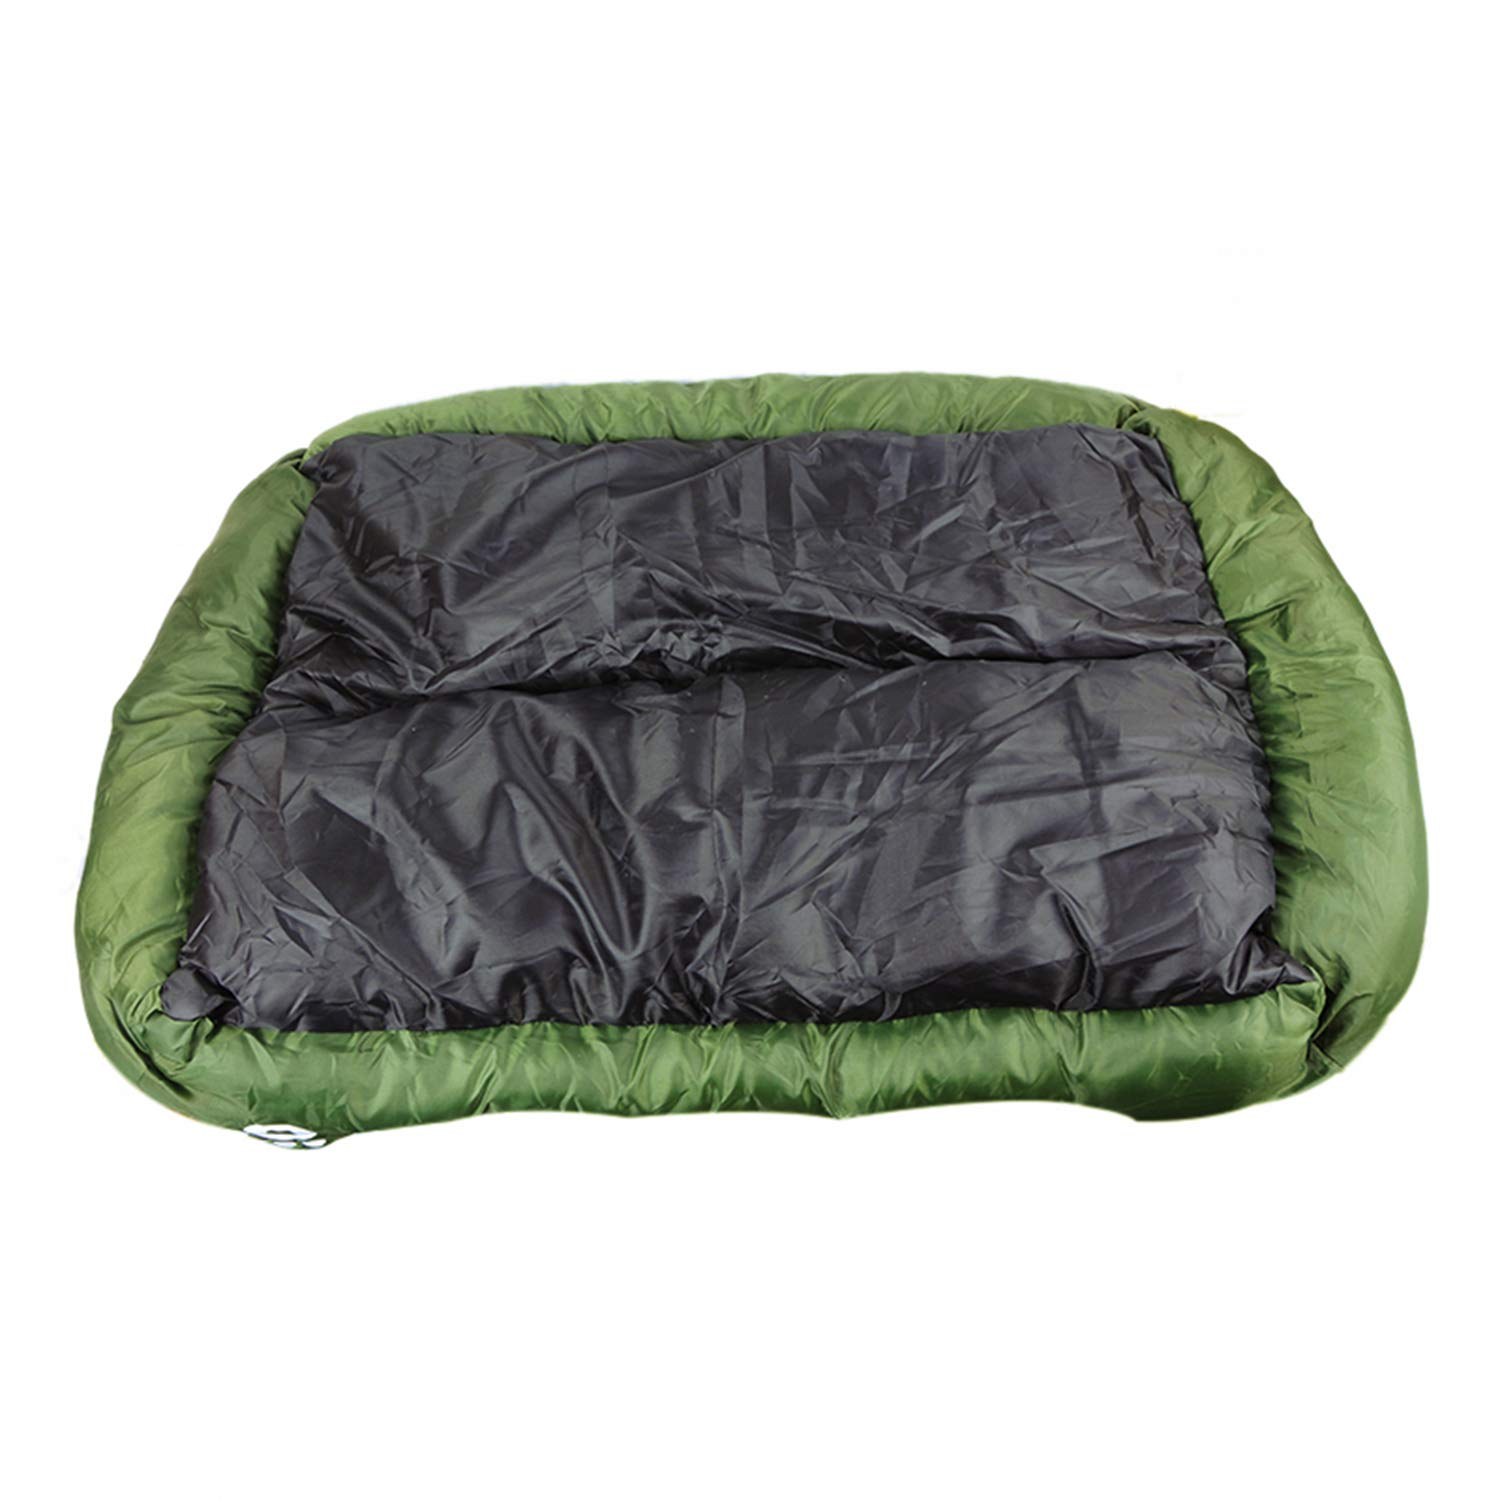 Dark green 80cmx65cmx17cmPETFDH 6 Sizes Pet Dog Bed Warming Dog House Soft Material Nest Dog Baskets Fall and Winter Warm Kennel for Cat Puppy Quality Purple 110cmx85cmx19cm